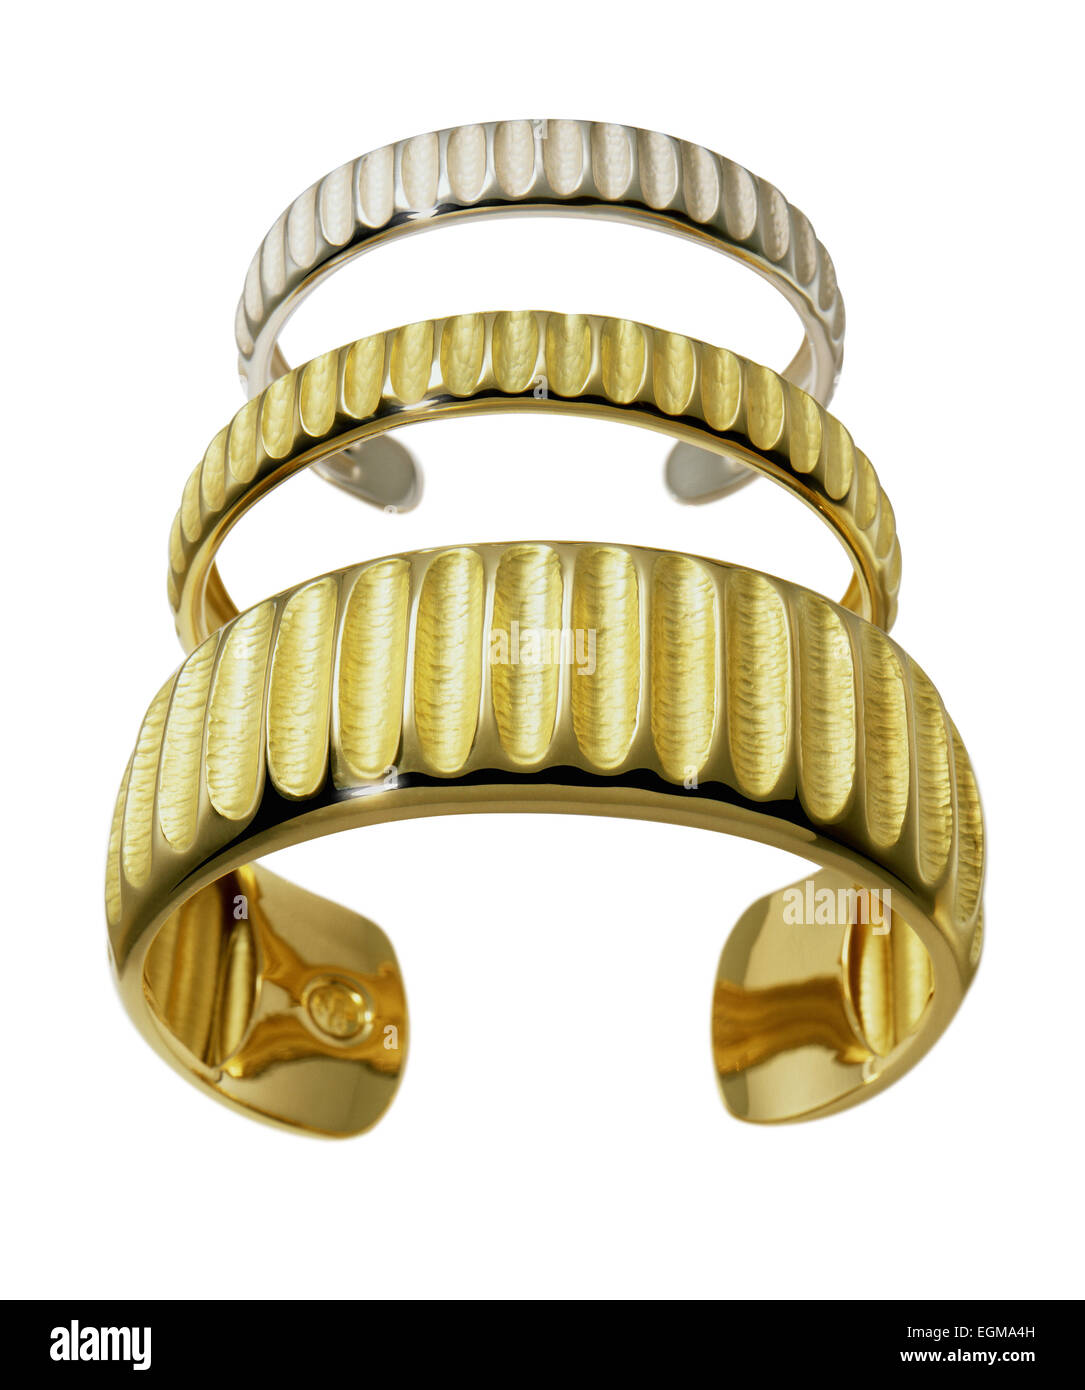 Three Bracelets - Stock Image